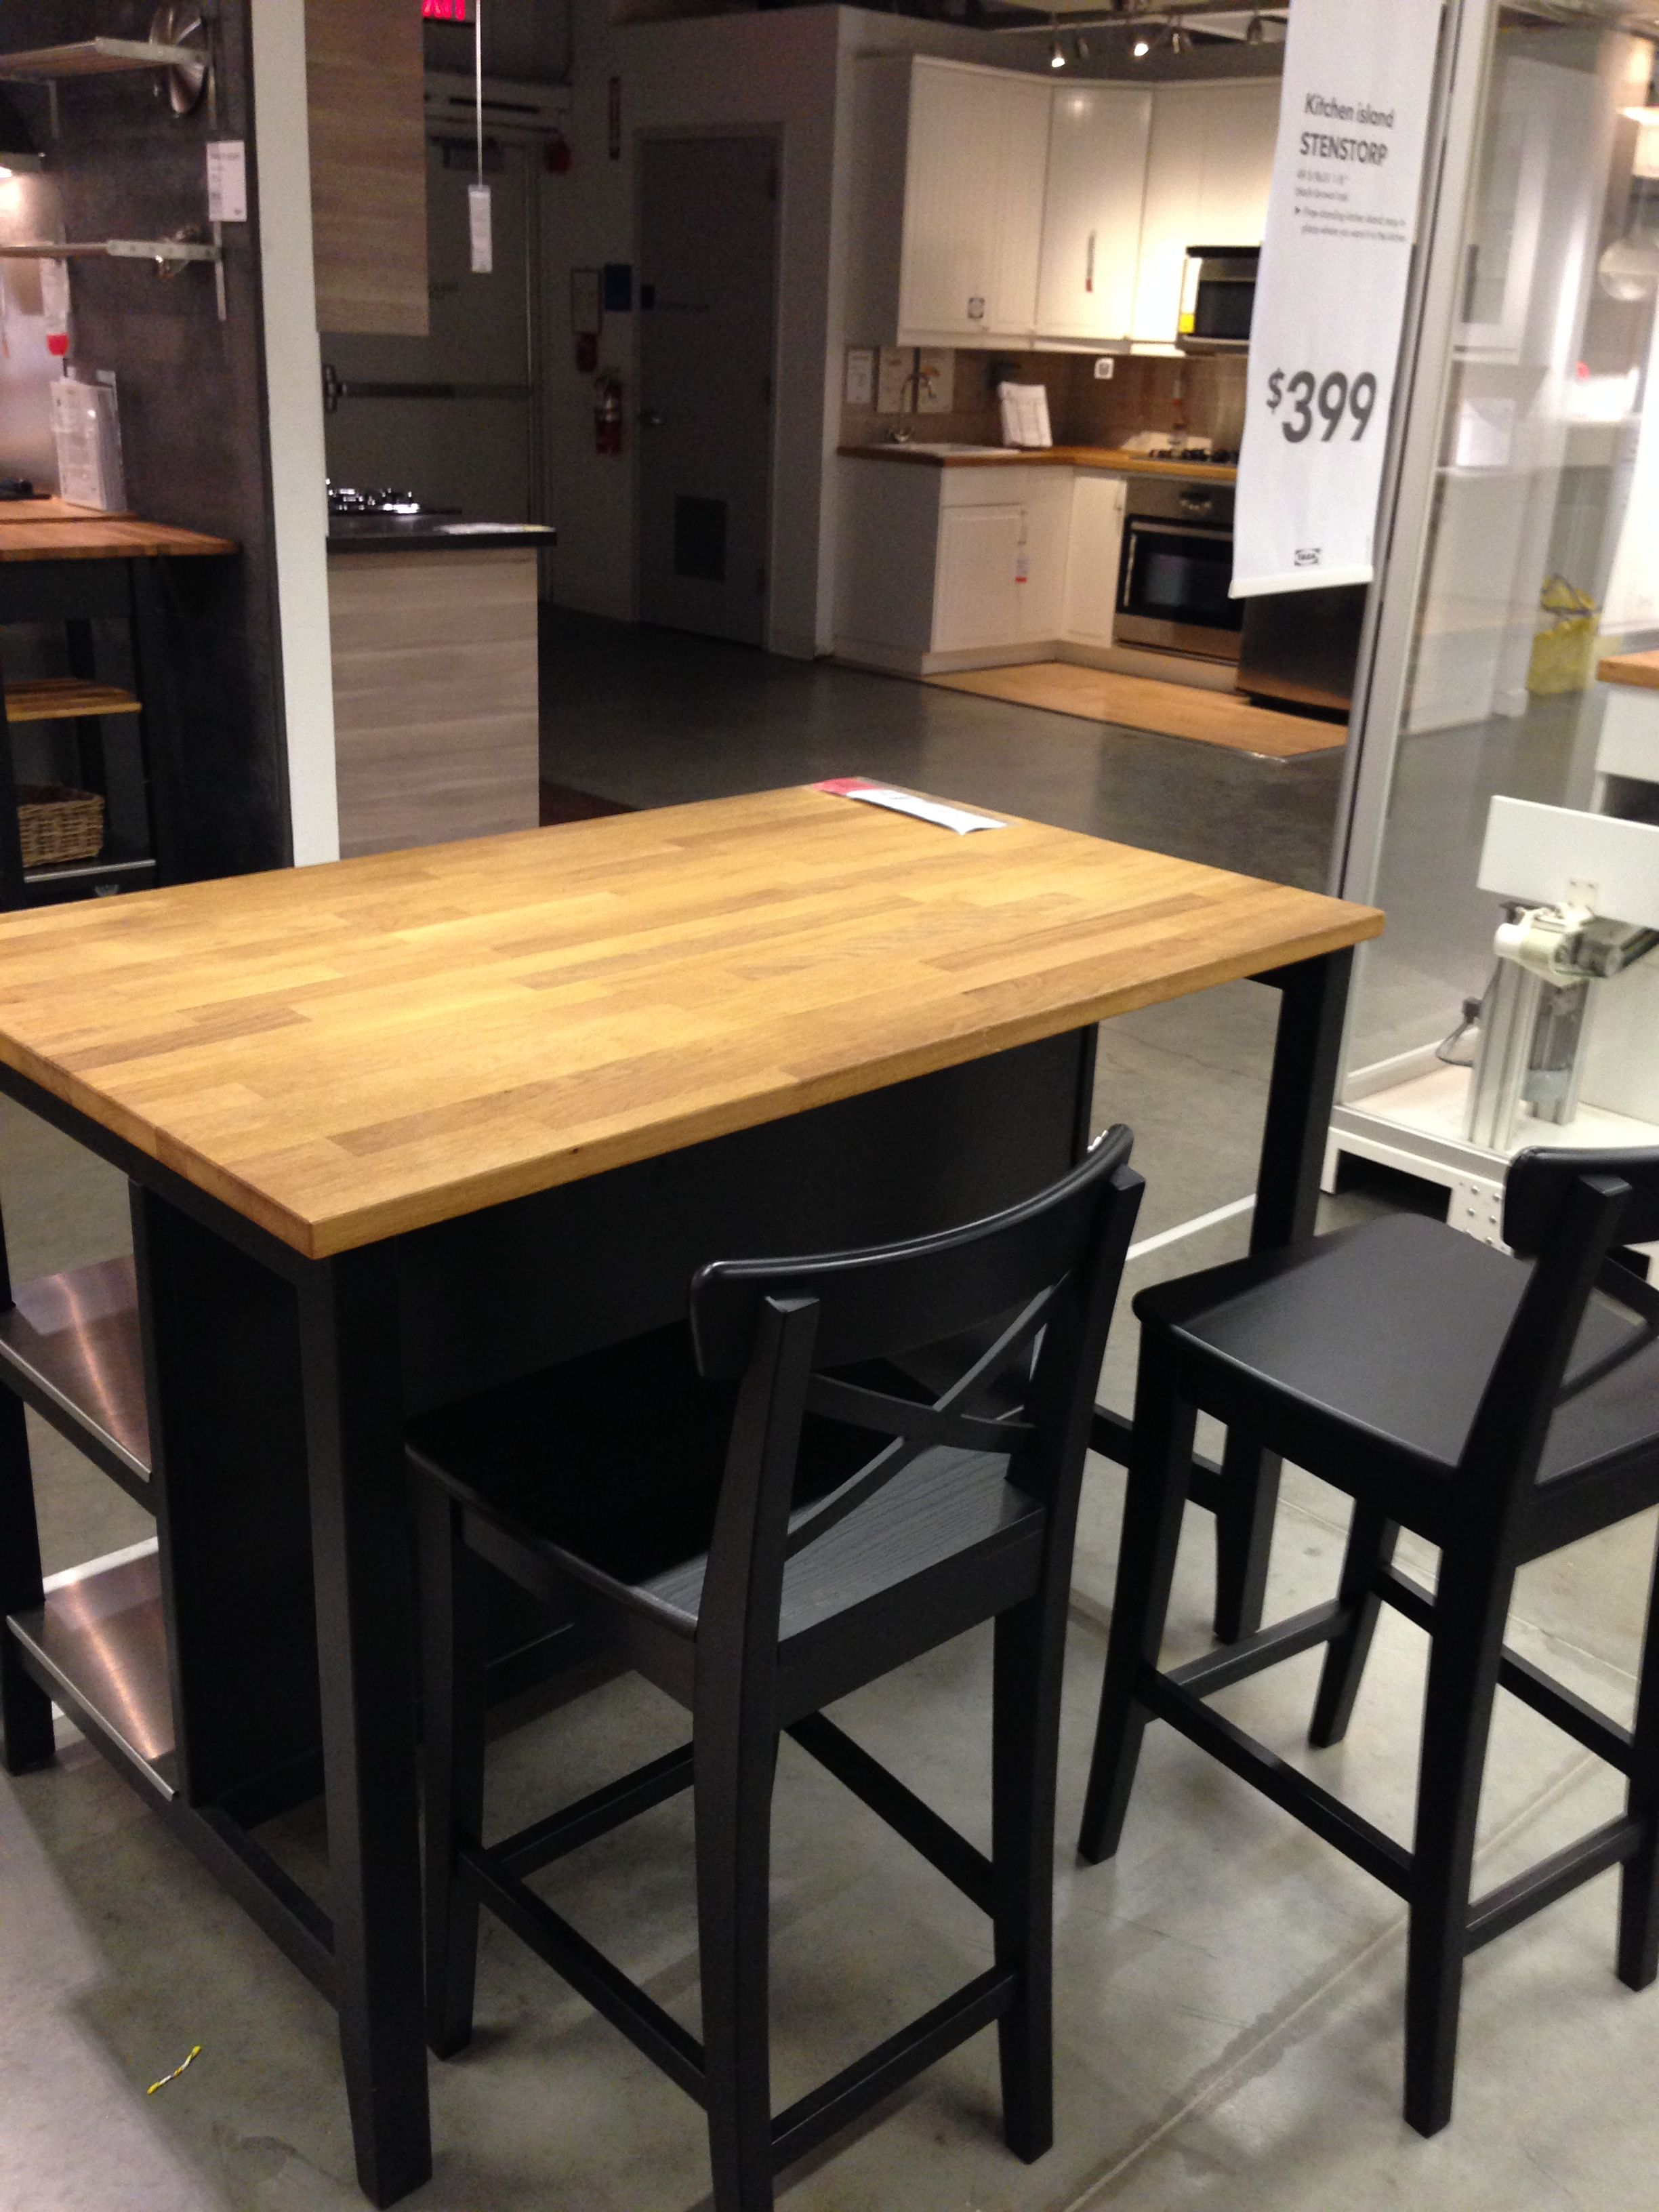 Incroyable Ikea Stenstorp Kitchen Island Dark Oak   Back Kitchen Island I Like This  Because You Can Have Seating In The Kitchen, You Have The Space For It. ...